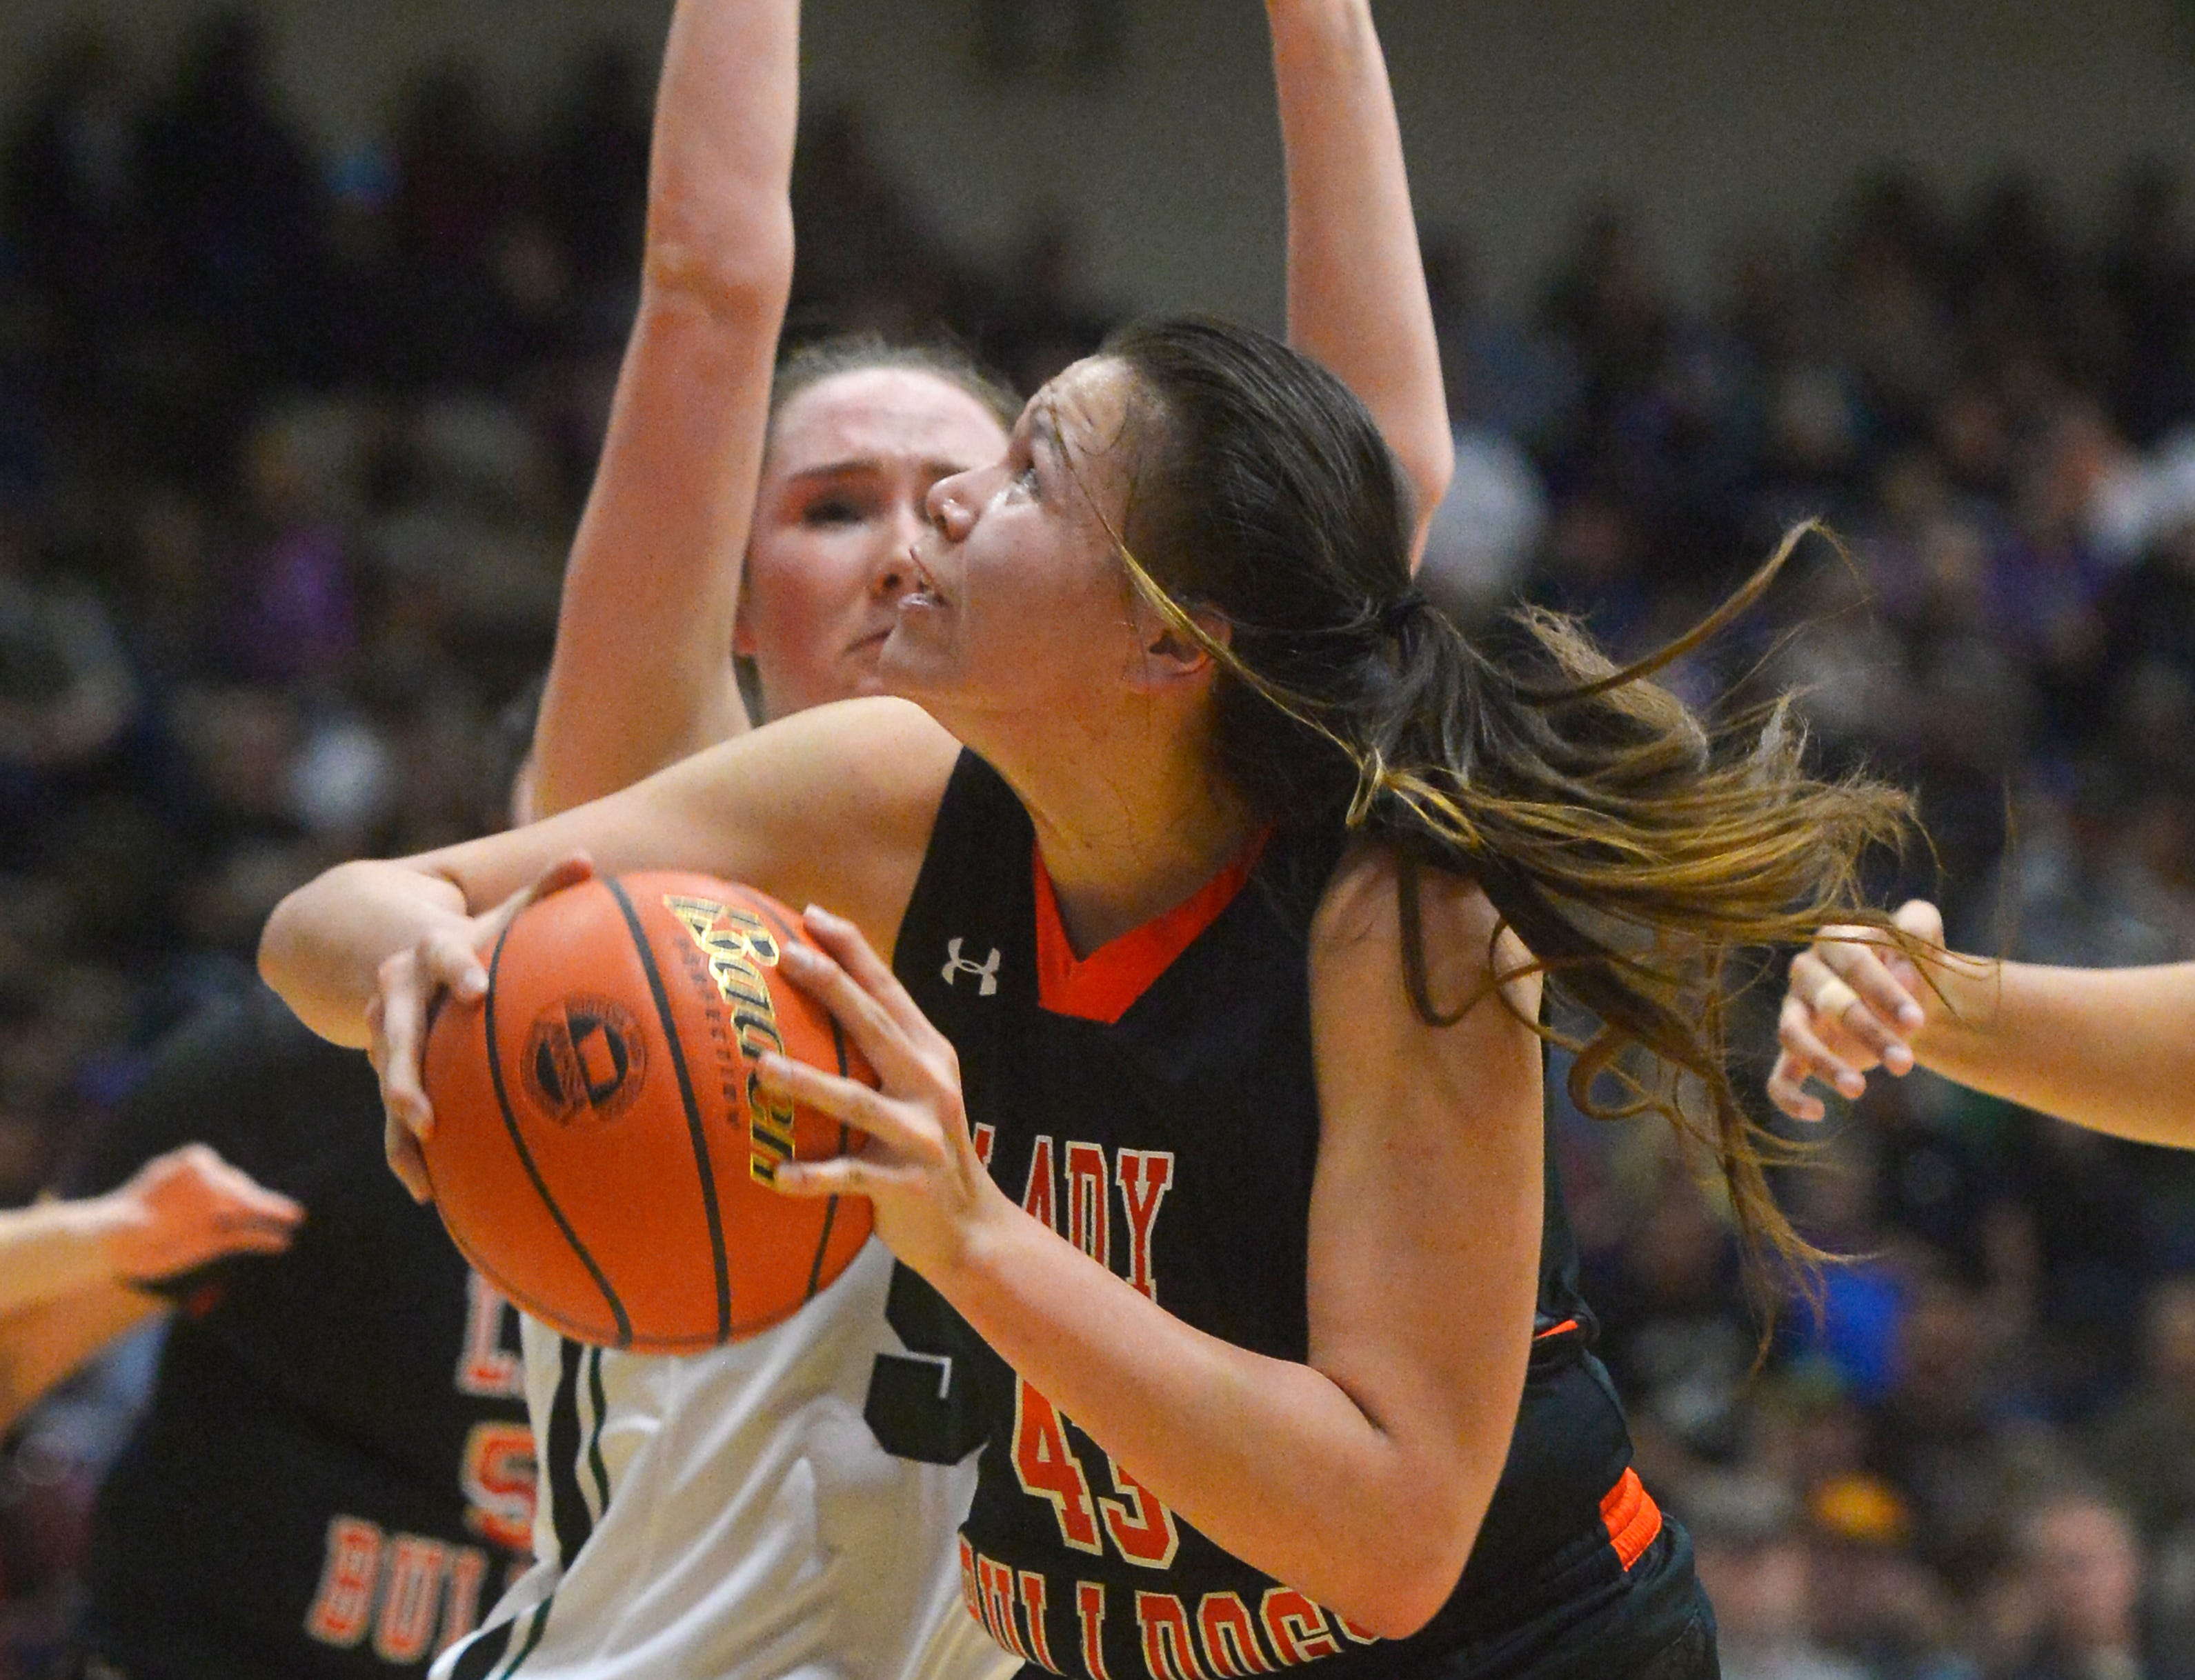 Hardin's Marie Five eyes the basket during the semifinal game against Billings Central during the State Class A Basketball Tournament in the Four Seasons Arena, Friday.